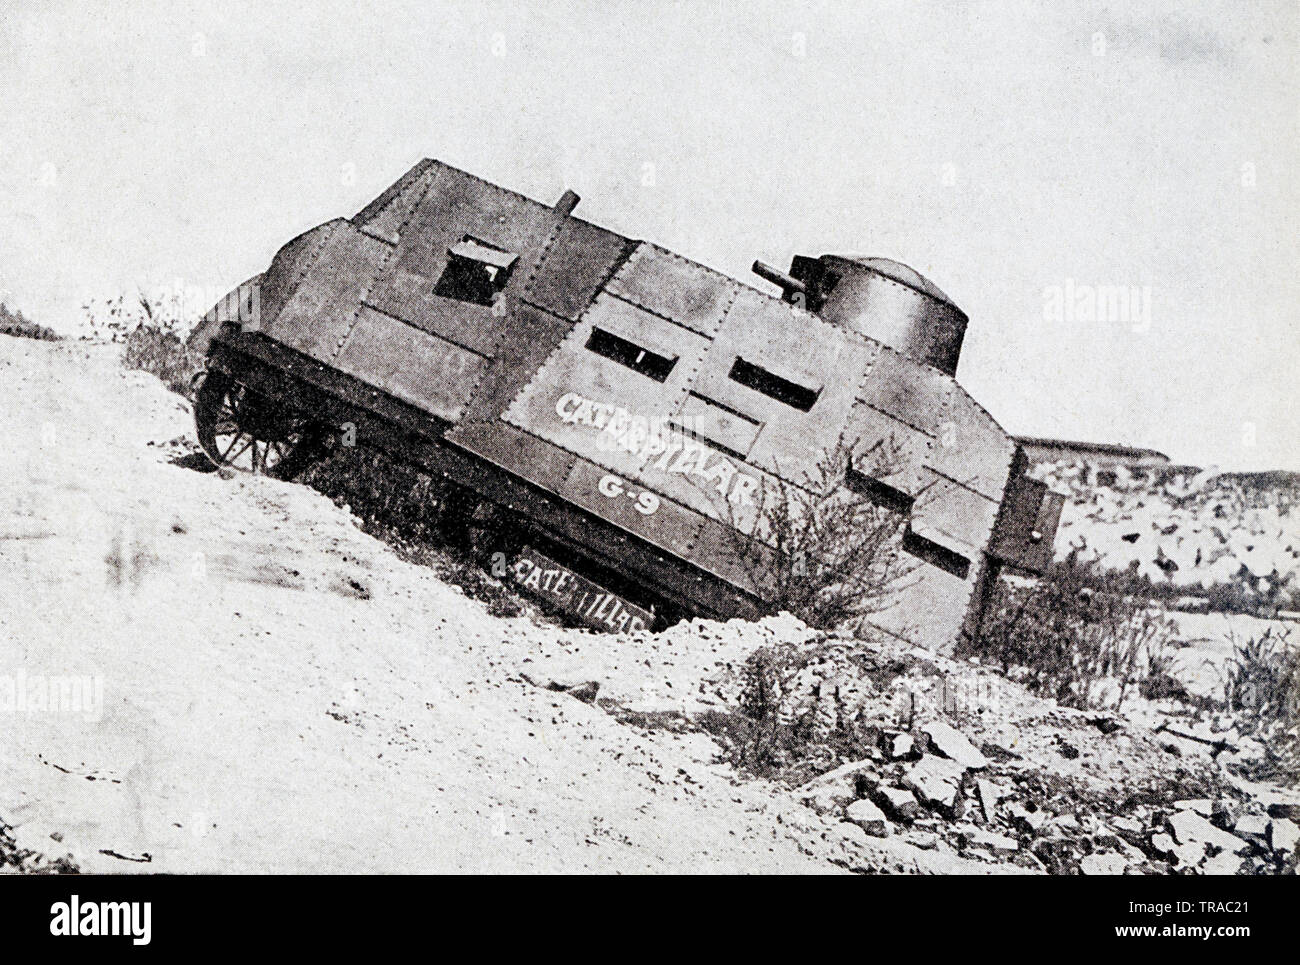 """This photo, dating to before 1922, relates to World War I. The caption reads: Caterpillar """"Tank"""" demonstrated to officers of army meets disaster. A model """"tank"""" constructed to be demonstrated to officers odf the United States Army turned a double somersault while climbing a bank after crossing the Los Angeles river, when the soft earrth gave way under the 13-ton machine. The demonstration, however, was successful, as it showed how easily a machine used in time of war can cross a river and climb its banks. The """"Tank"""" is modeled after those in actual service in Europe. - Stock Image"""